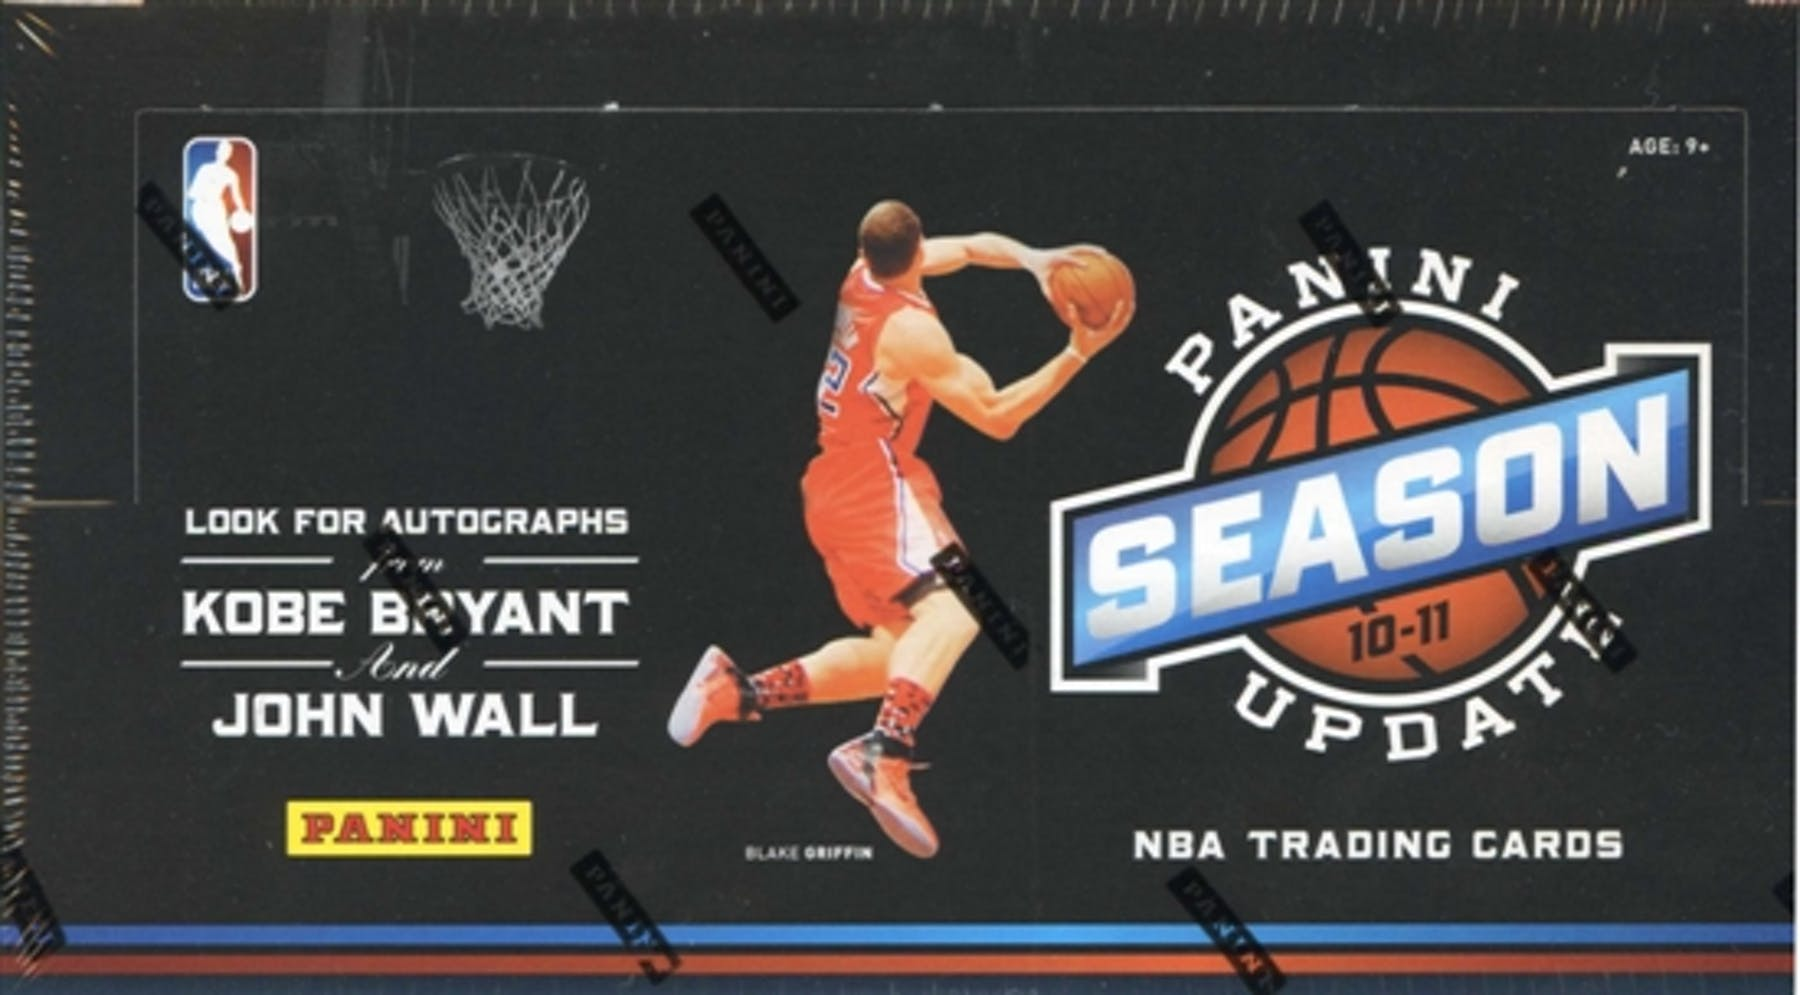 52f234e4ca9 2010 11 Panini Season Update Basketball Hobby Box